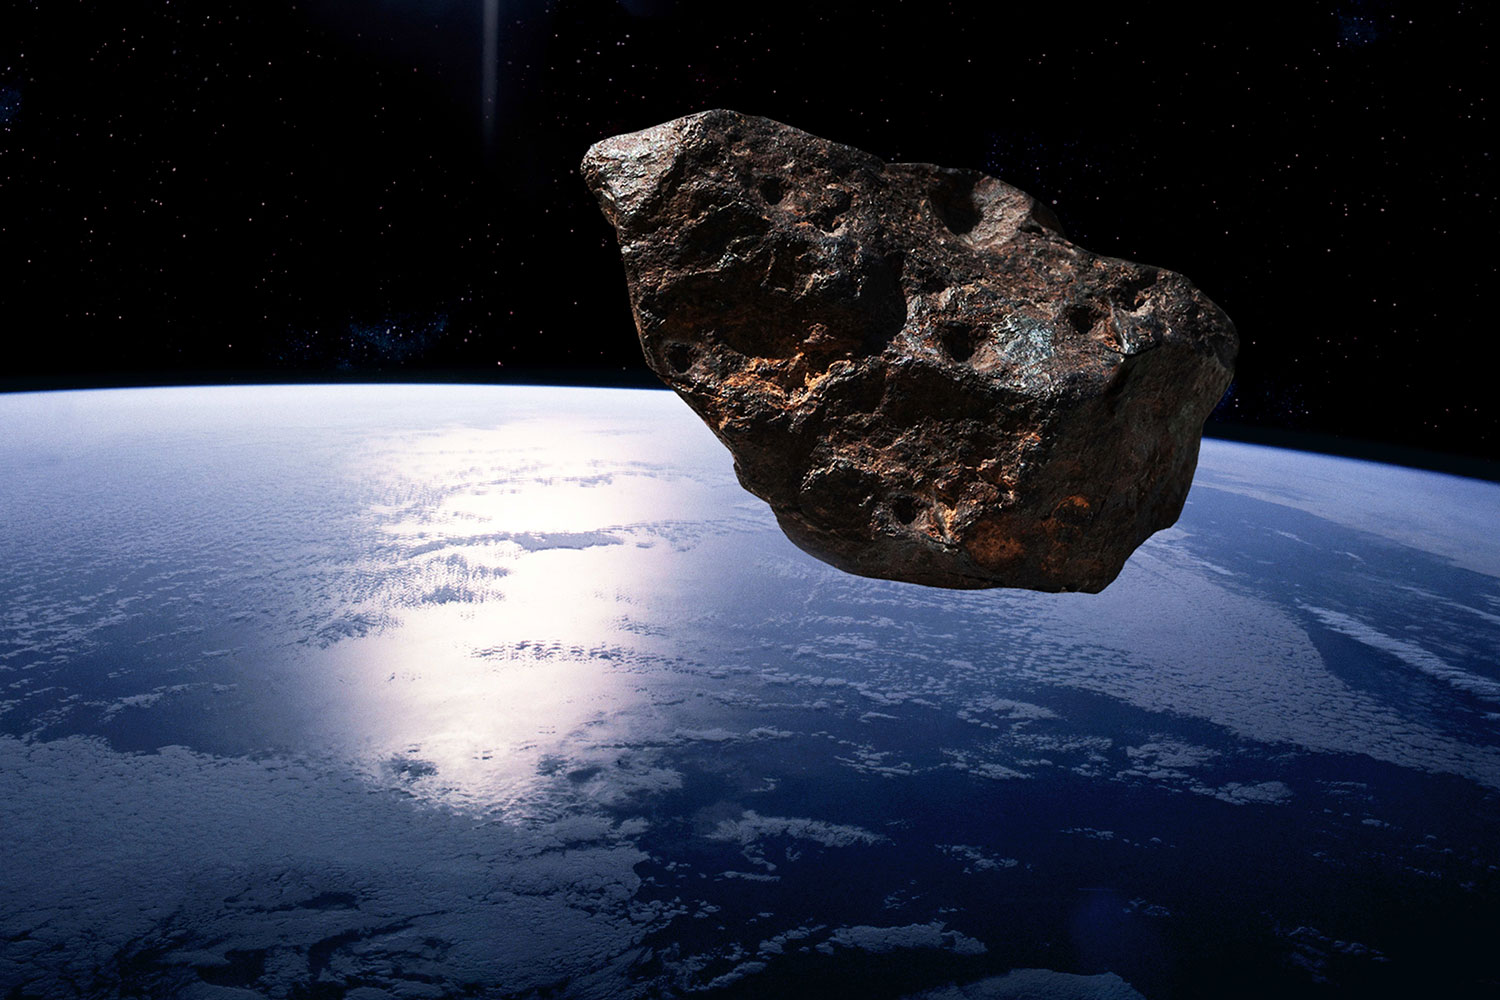 Chinese company to launch its first 'space mining robot' this year